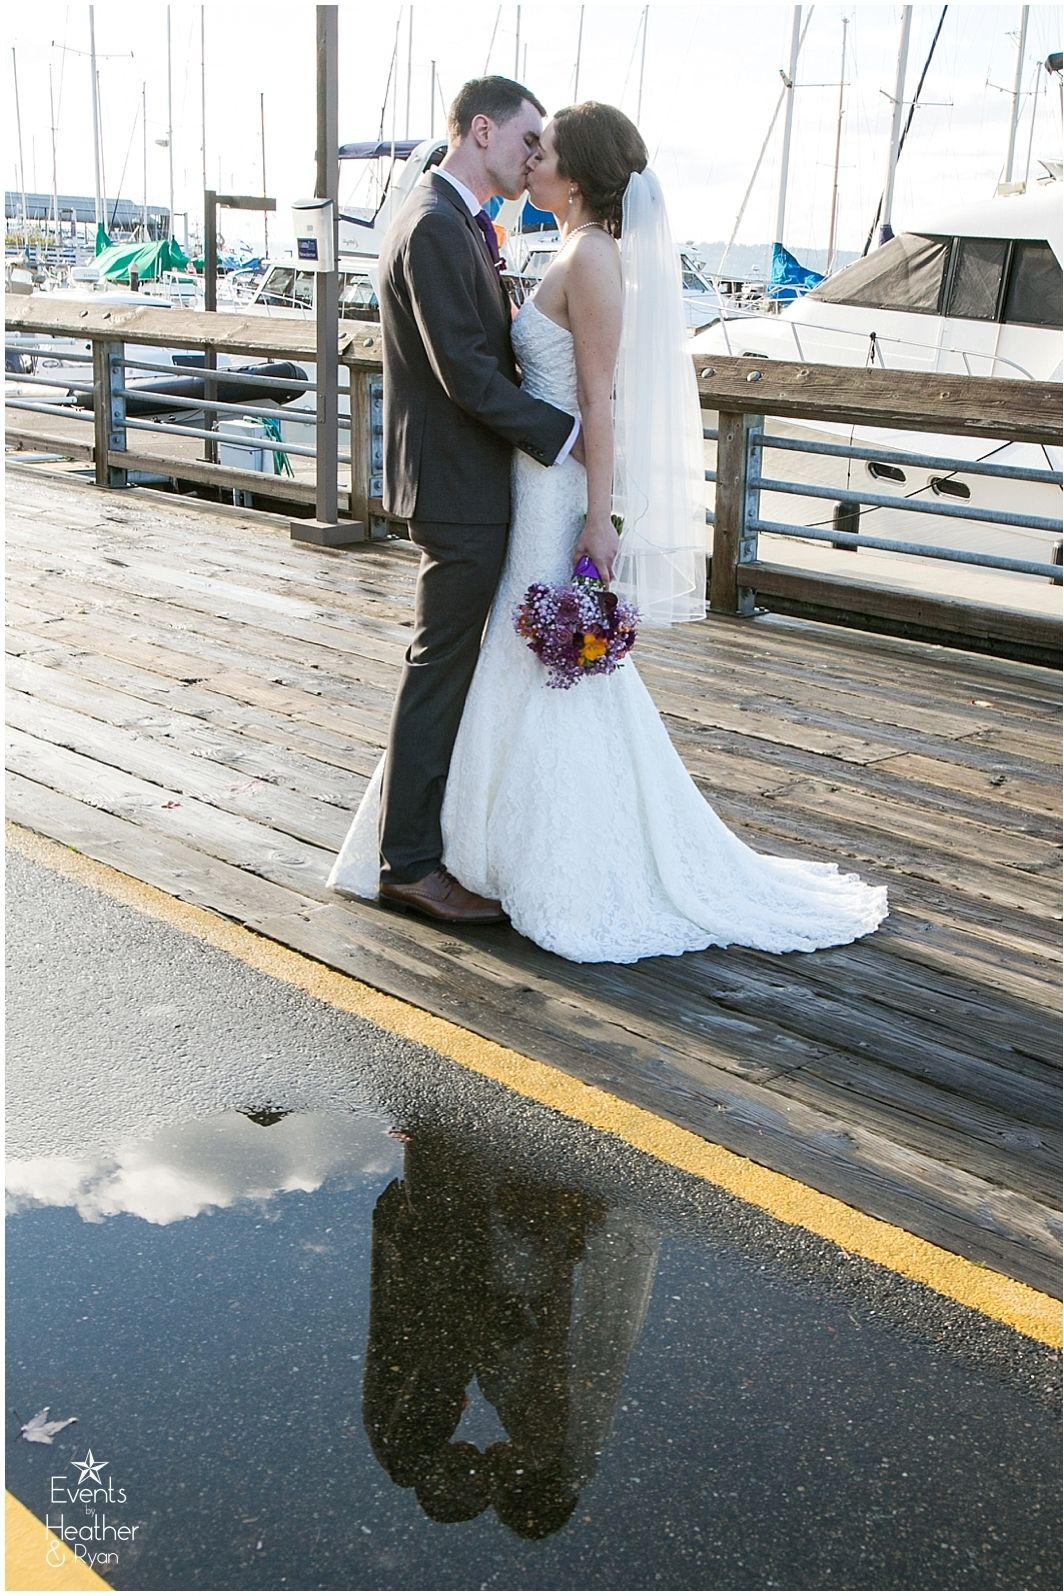 The sun came out after the rain an we were so lucky to find the perfect puddle for this photo!   #eventsbyhr #reflectionphoto #brideandgroom #sunandrain #edmondsyachthclub #edmondswedding  #rainyday #kissingaftertherain #waterfrontwedding #pnwwedding #edmondsyachtclubwedding